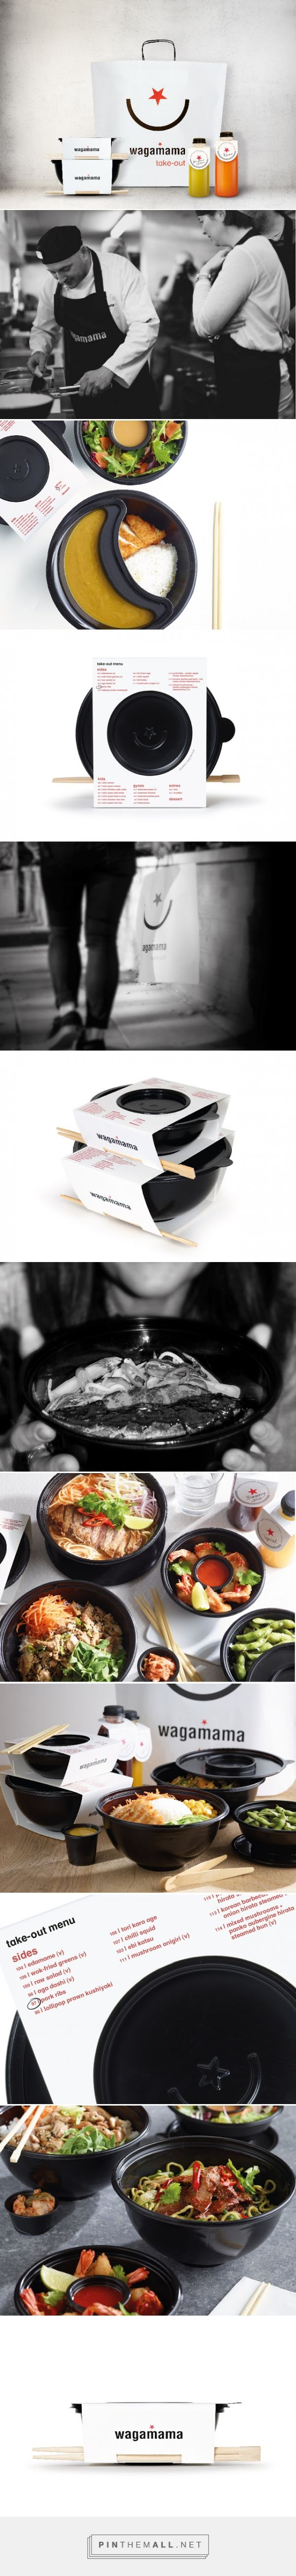 Wagamama Takeaway Packaging designed by Pearlfisher.​ - http://www.packagingoftheworld.com/2015/10/wagamama-takeaway.html